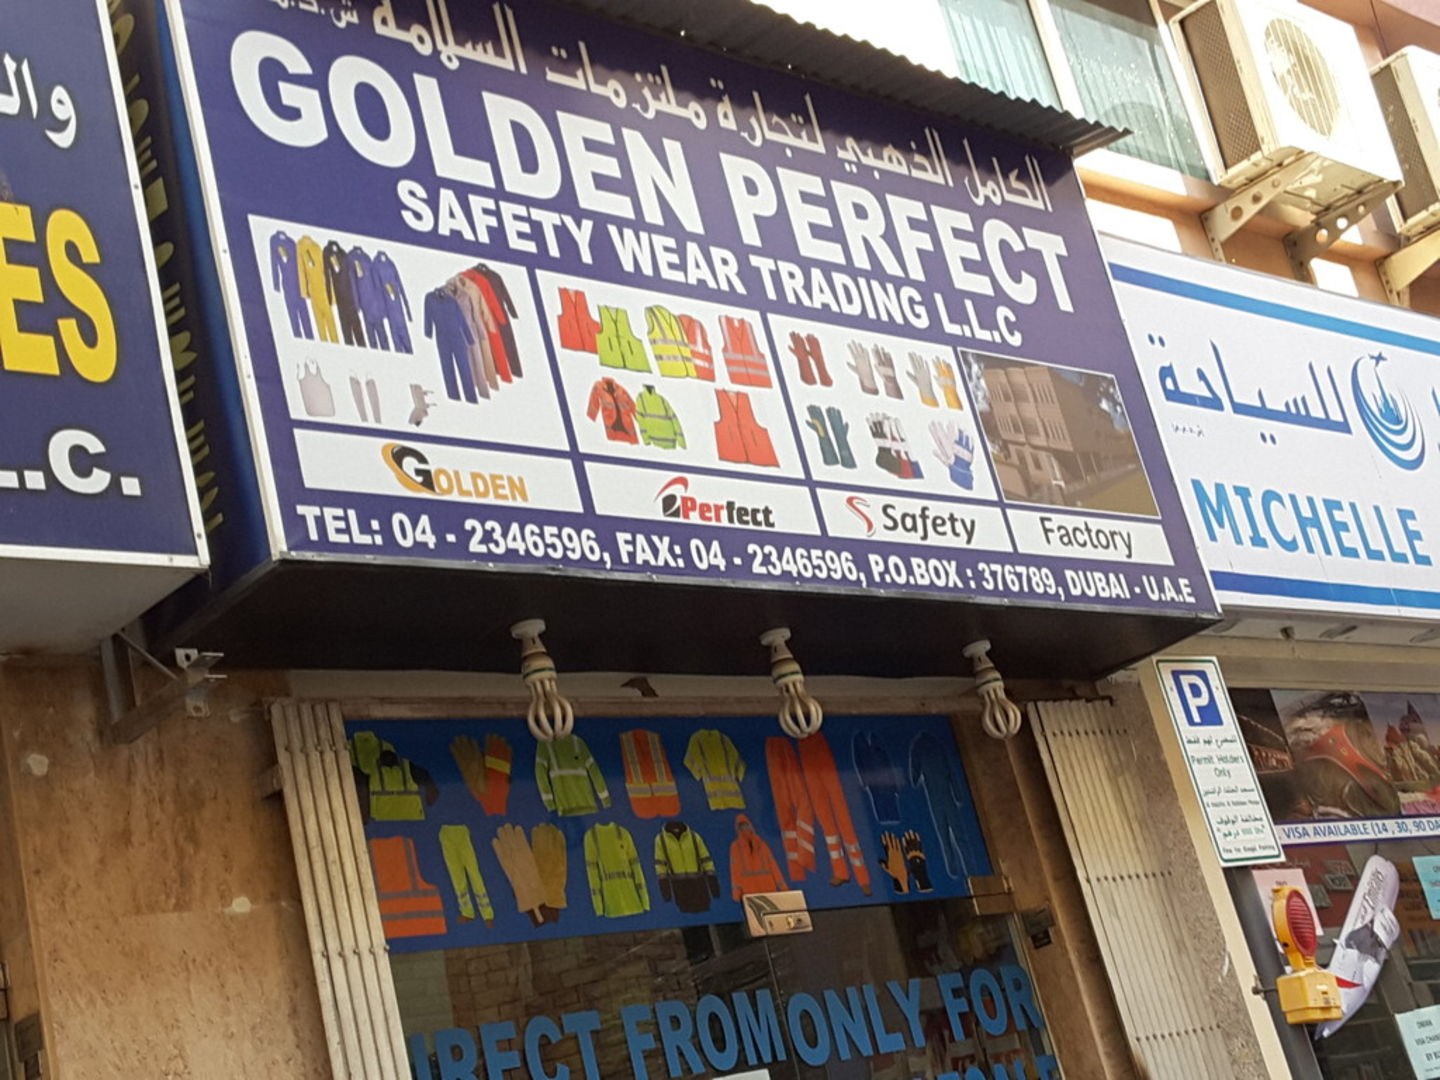 Walif-business-golden-perfect-safety-wear-trading